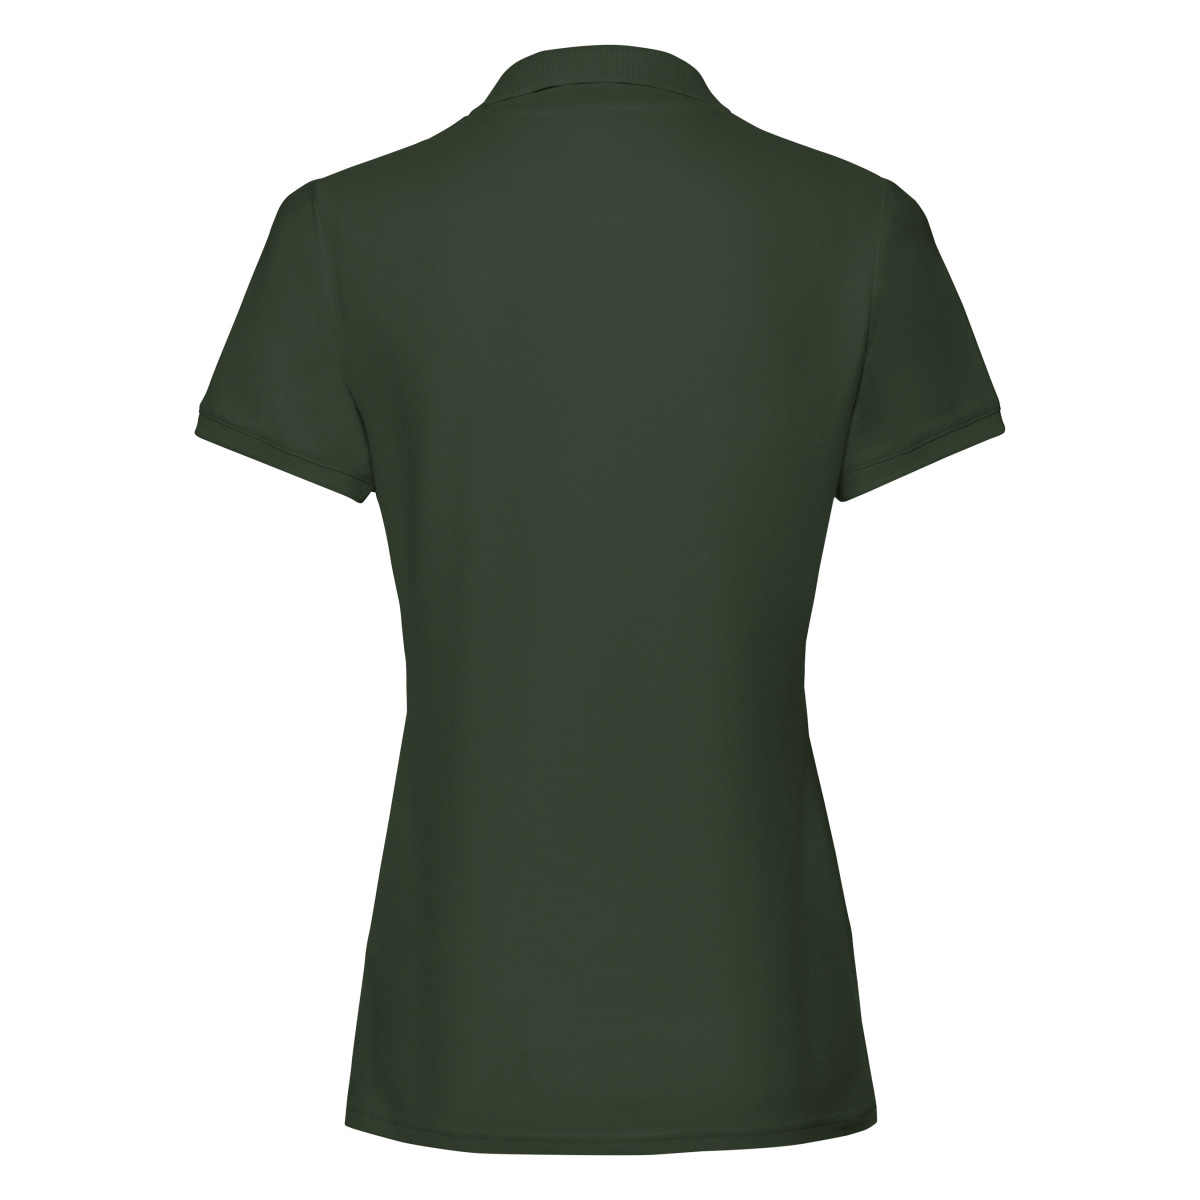 Fruit of the Loom Poloshirt »Damen Lady-Fit Premium« von Fruit of the Loom